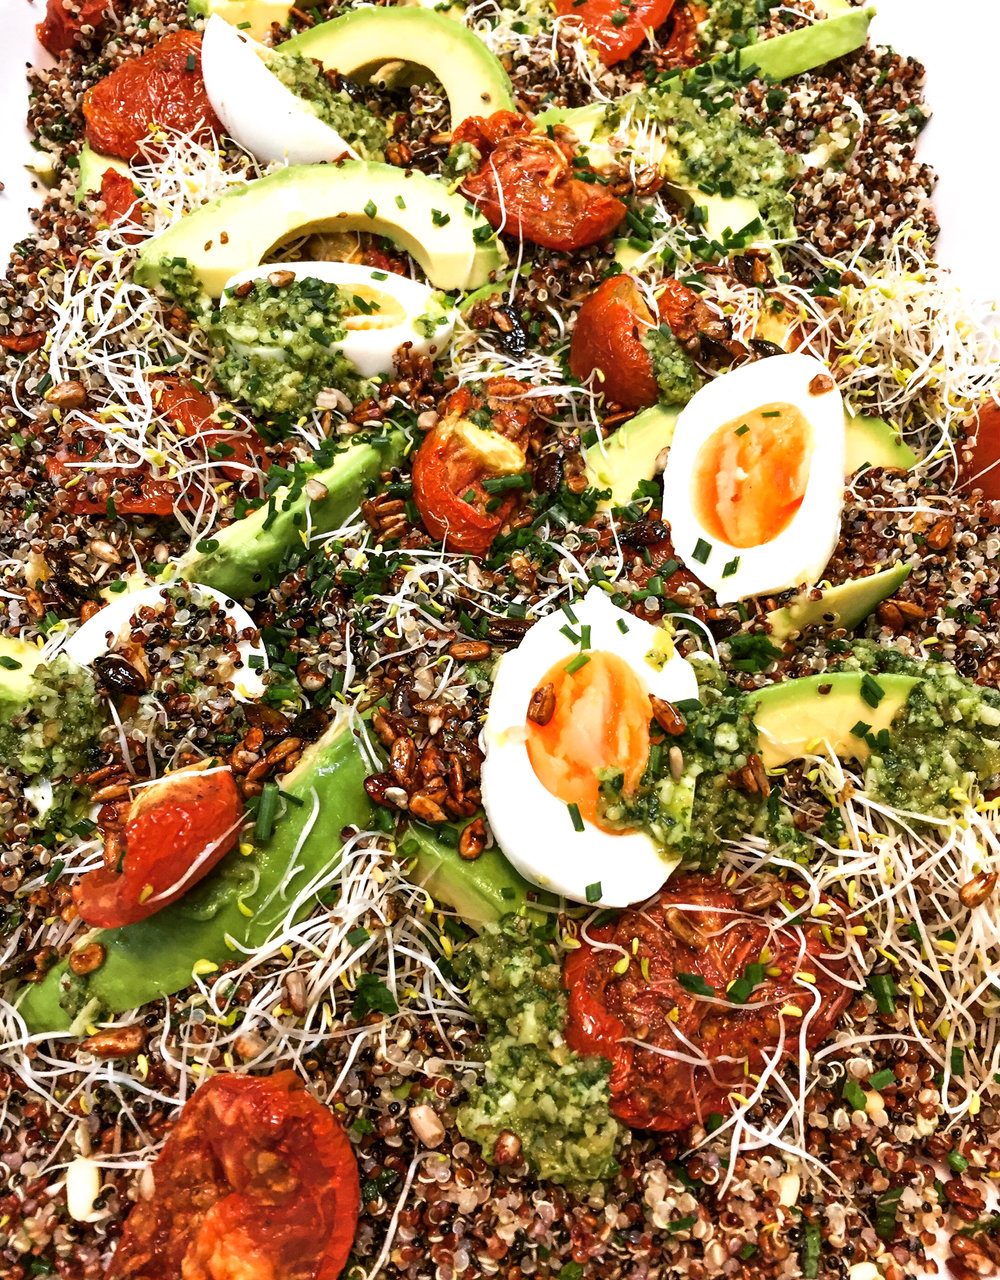 Mixed quinoa, slow roast tomato, avocado and soft boiled egg w walnut pesto